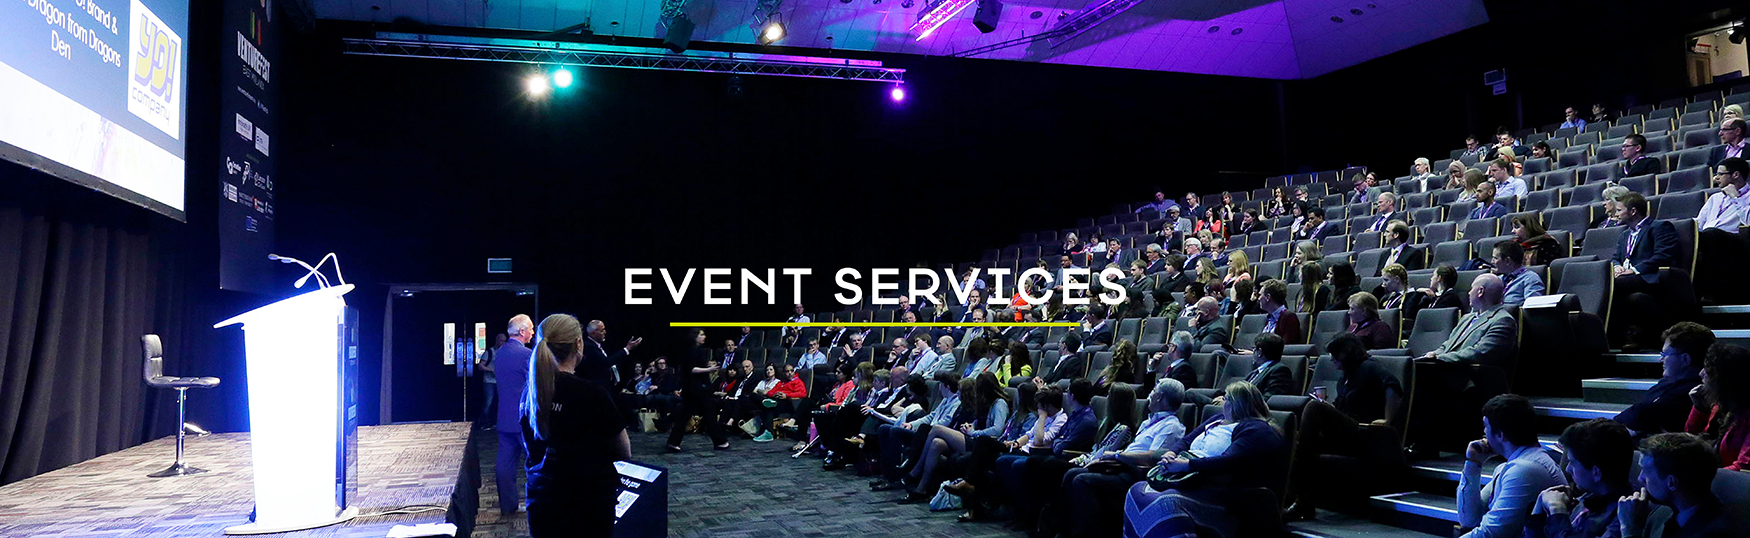 Partner event services